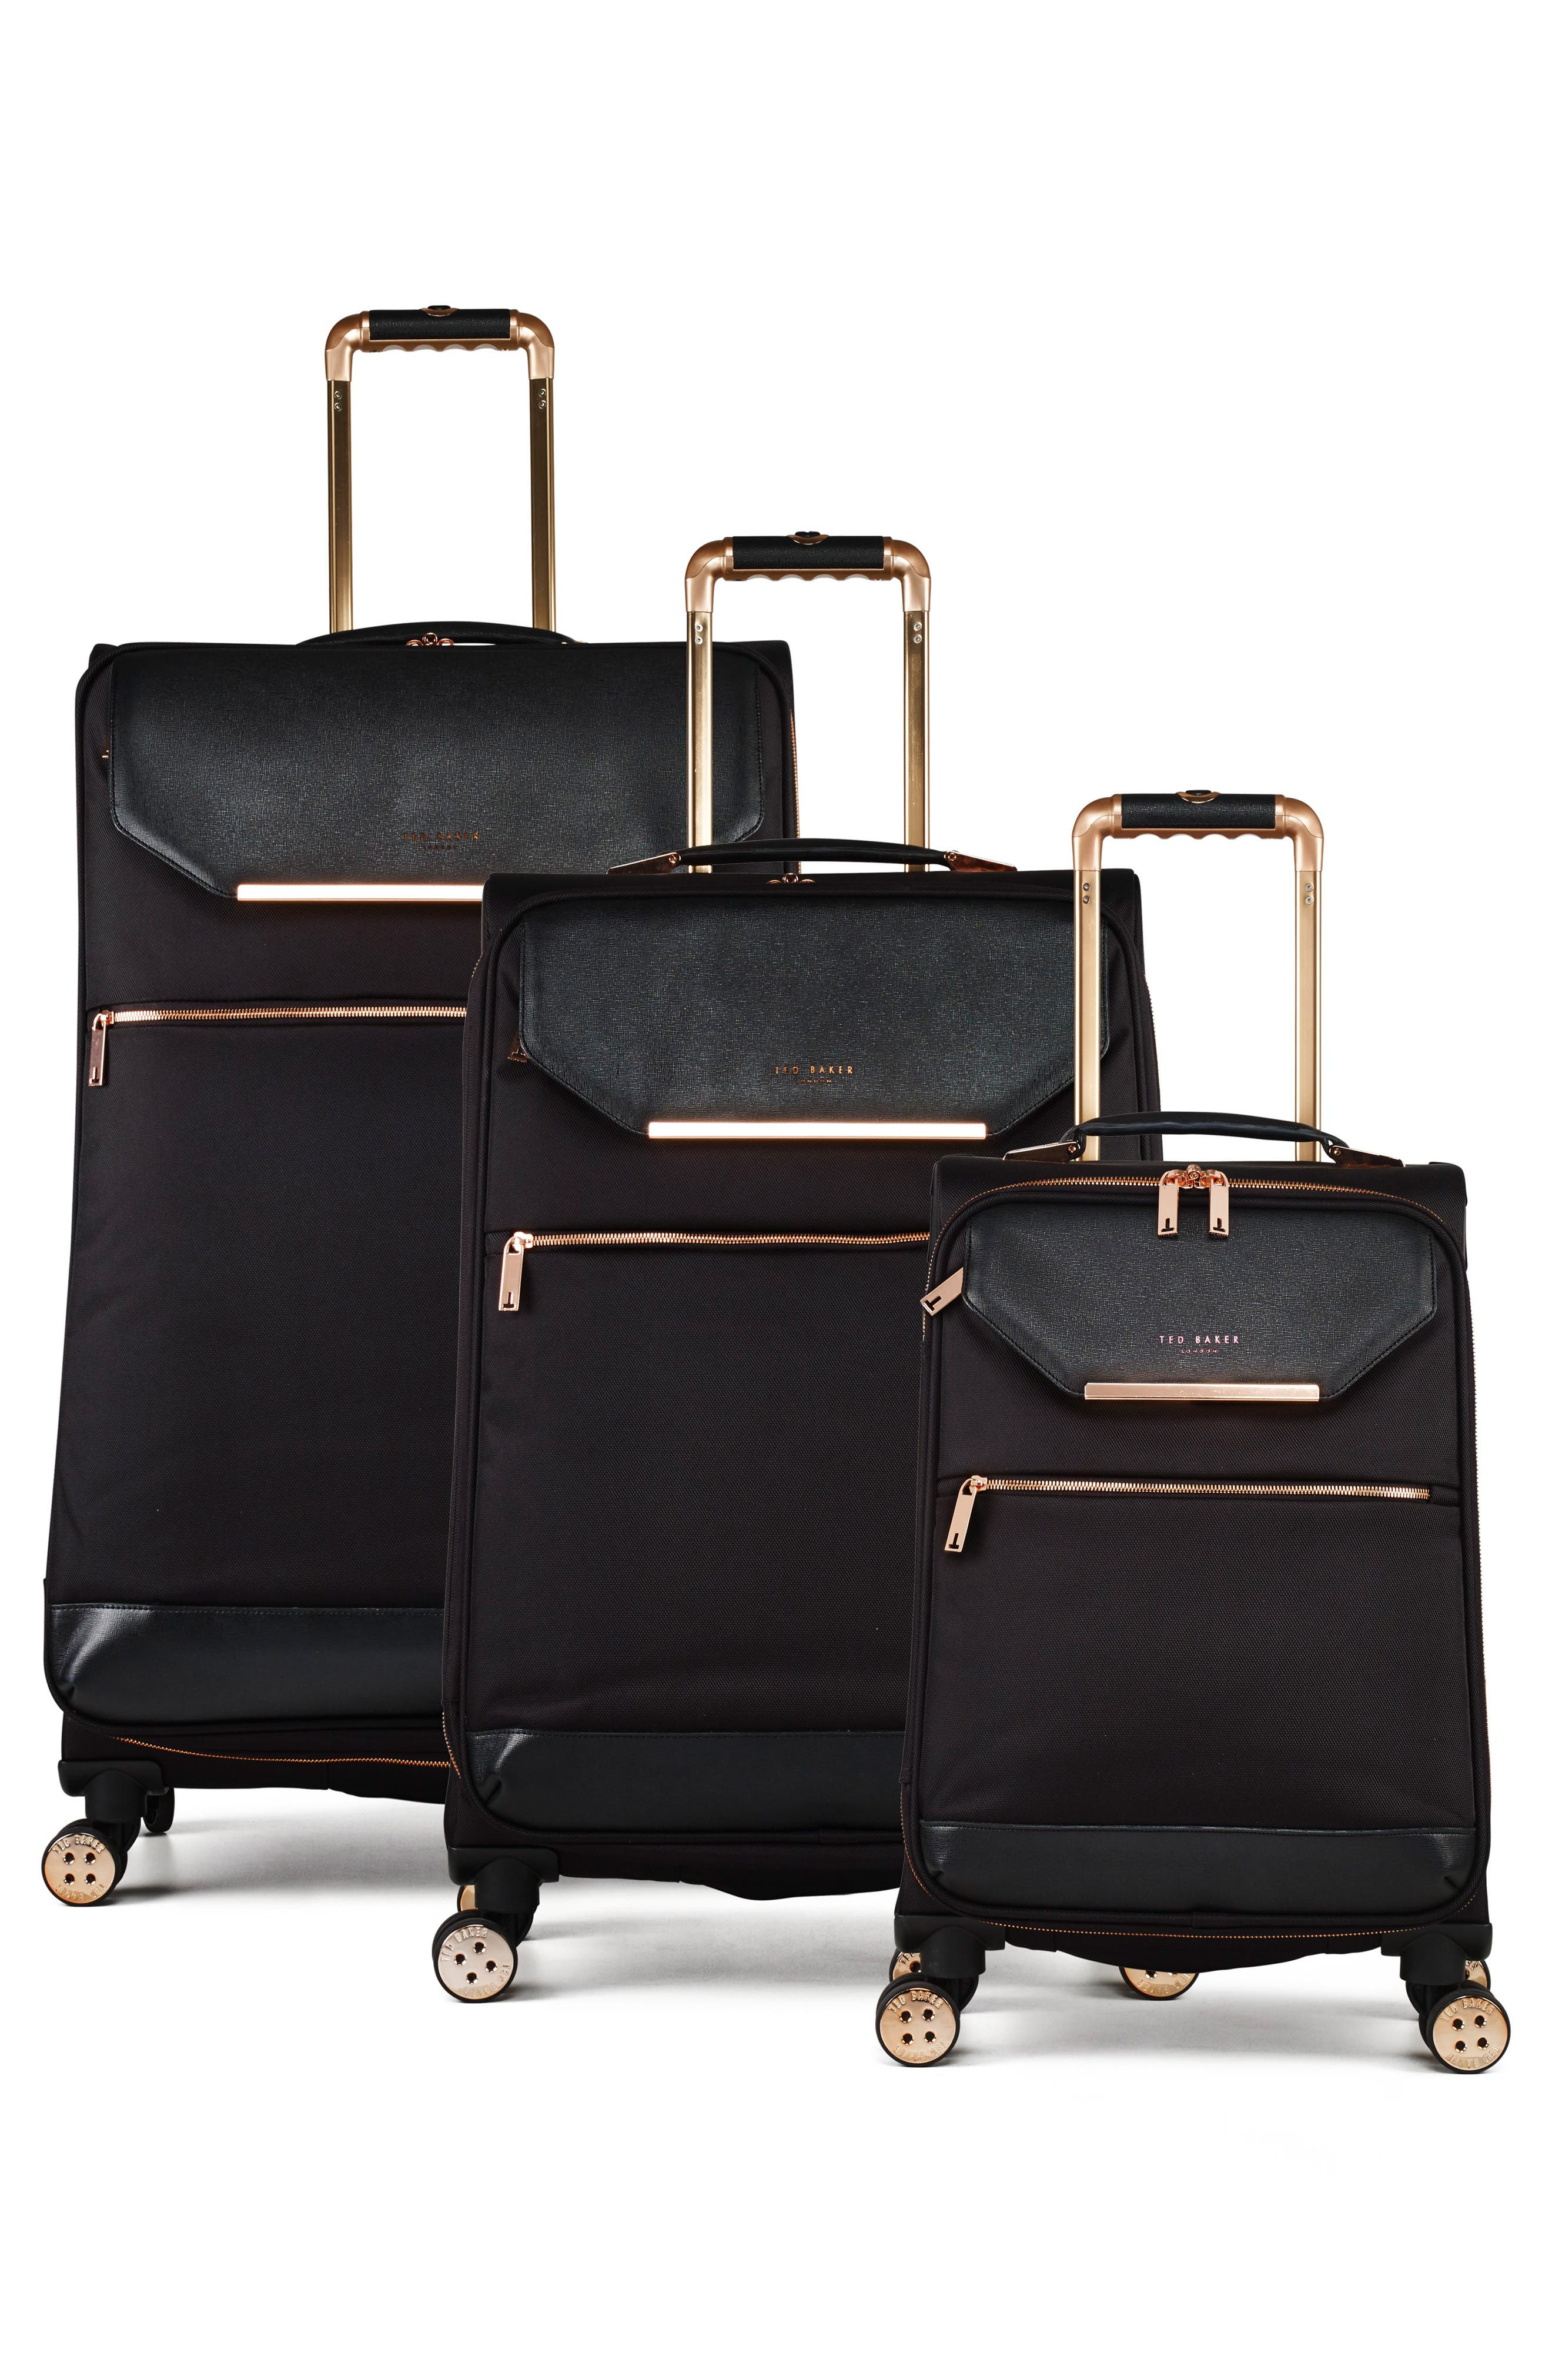 32-Inch Trolley Packing Case,                             Alternate thumbnail 3, color,                             BLACK